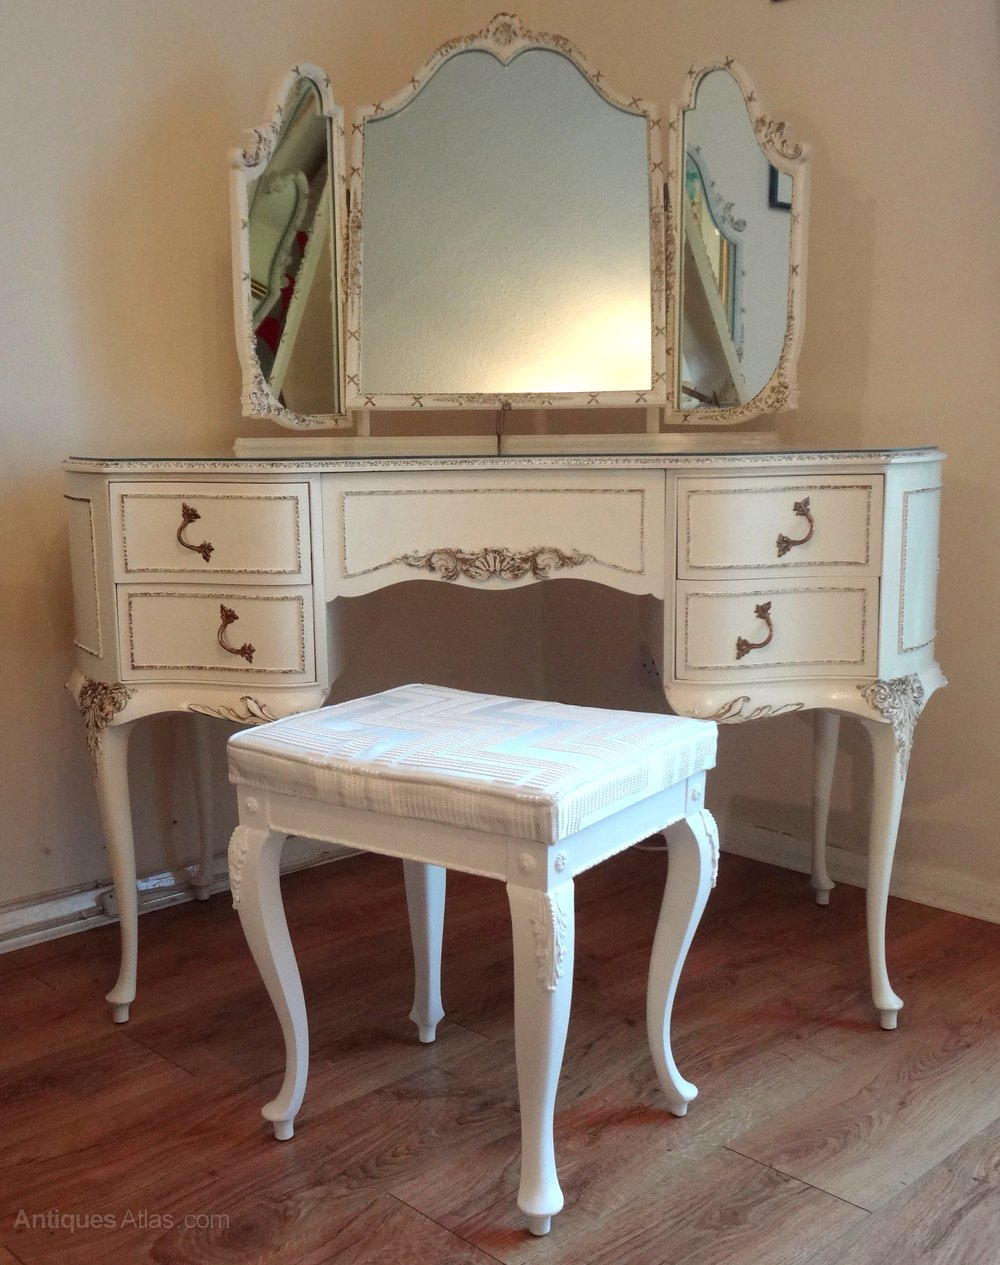 Antiques atlas louis dressing table - French Painted Dressing Table Stool